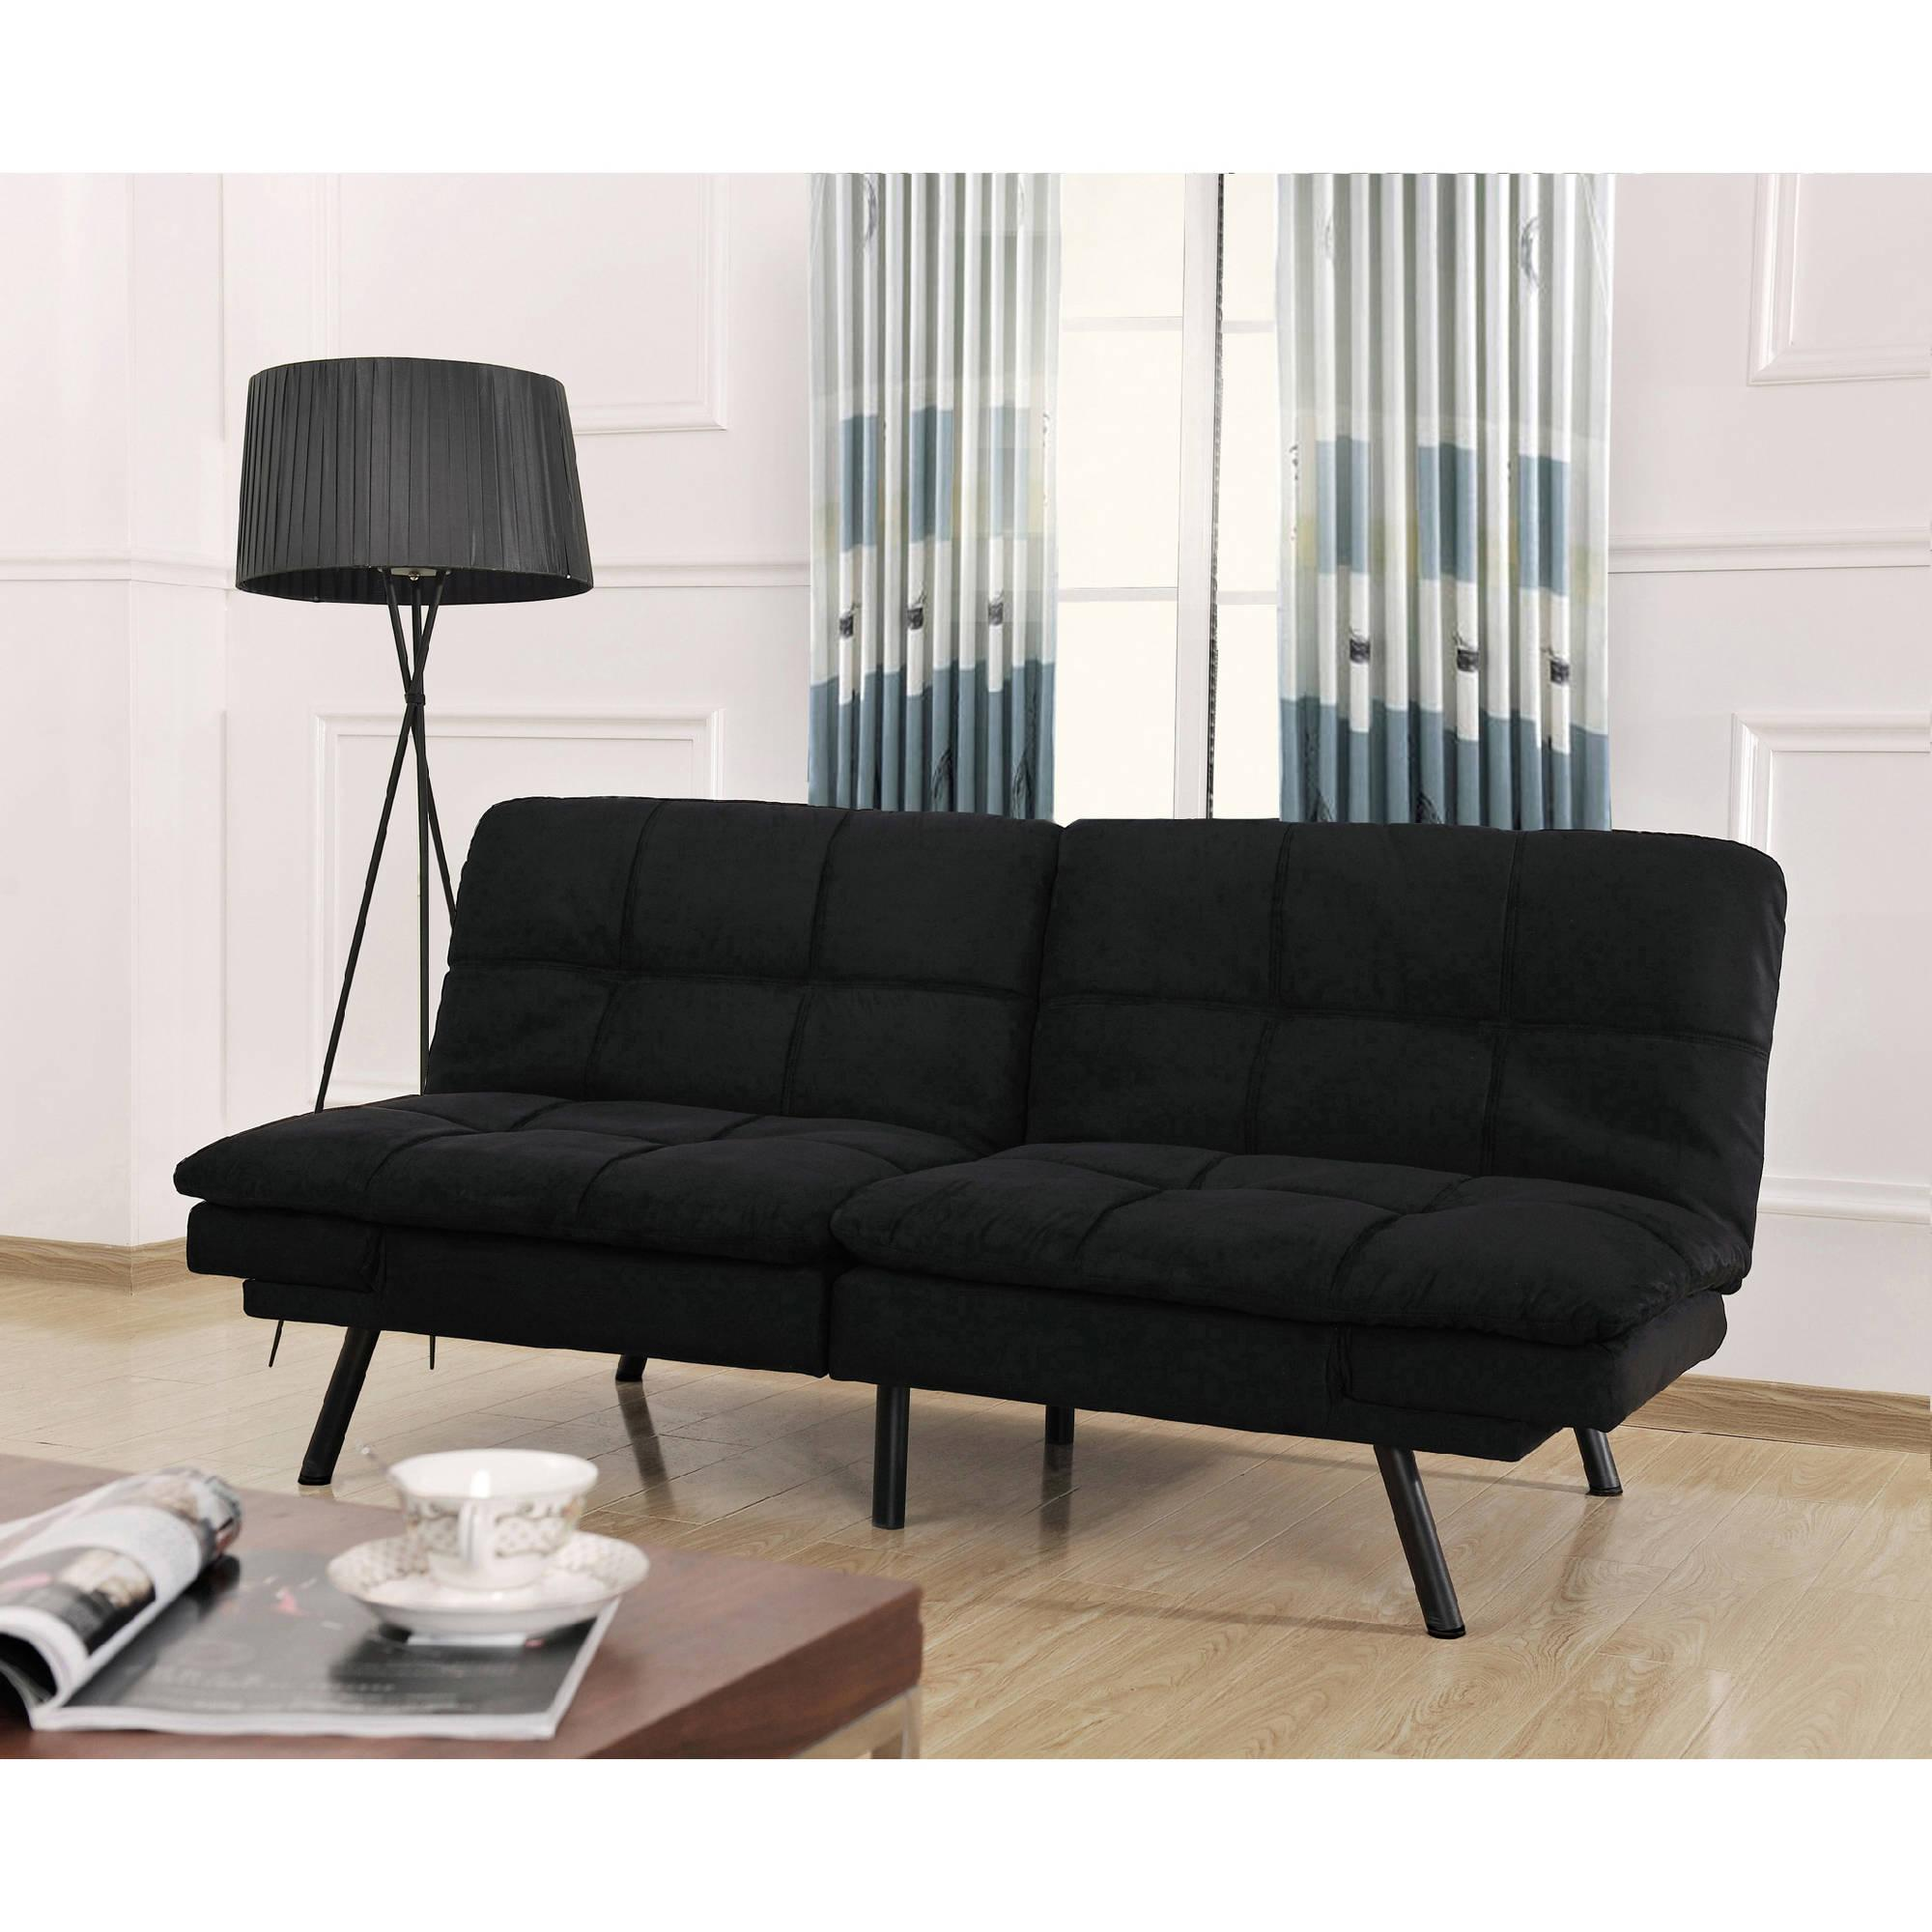 Medium image of futons for sale at walmart   metal arm futon walmart   walmart futon